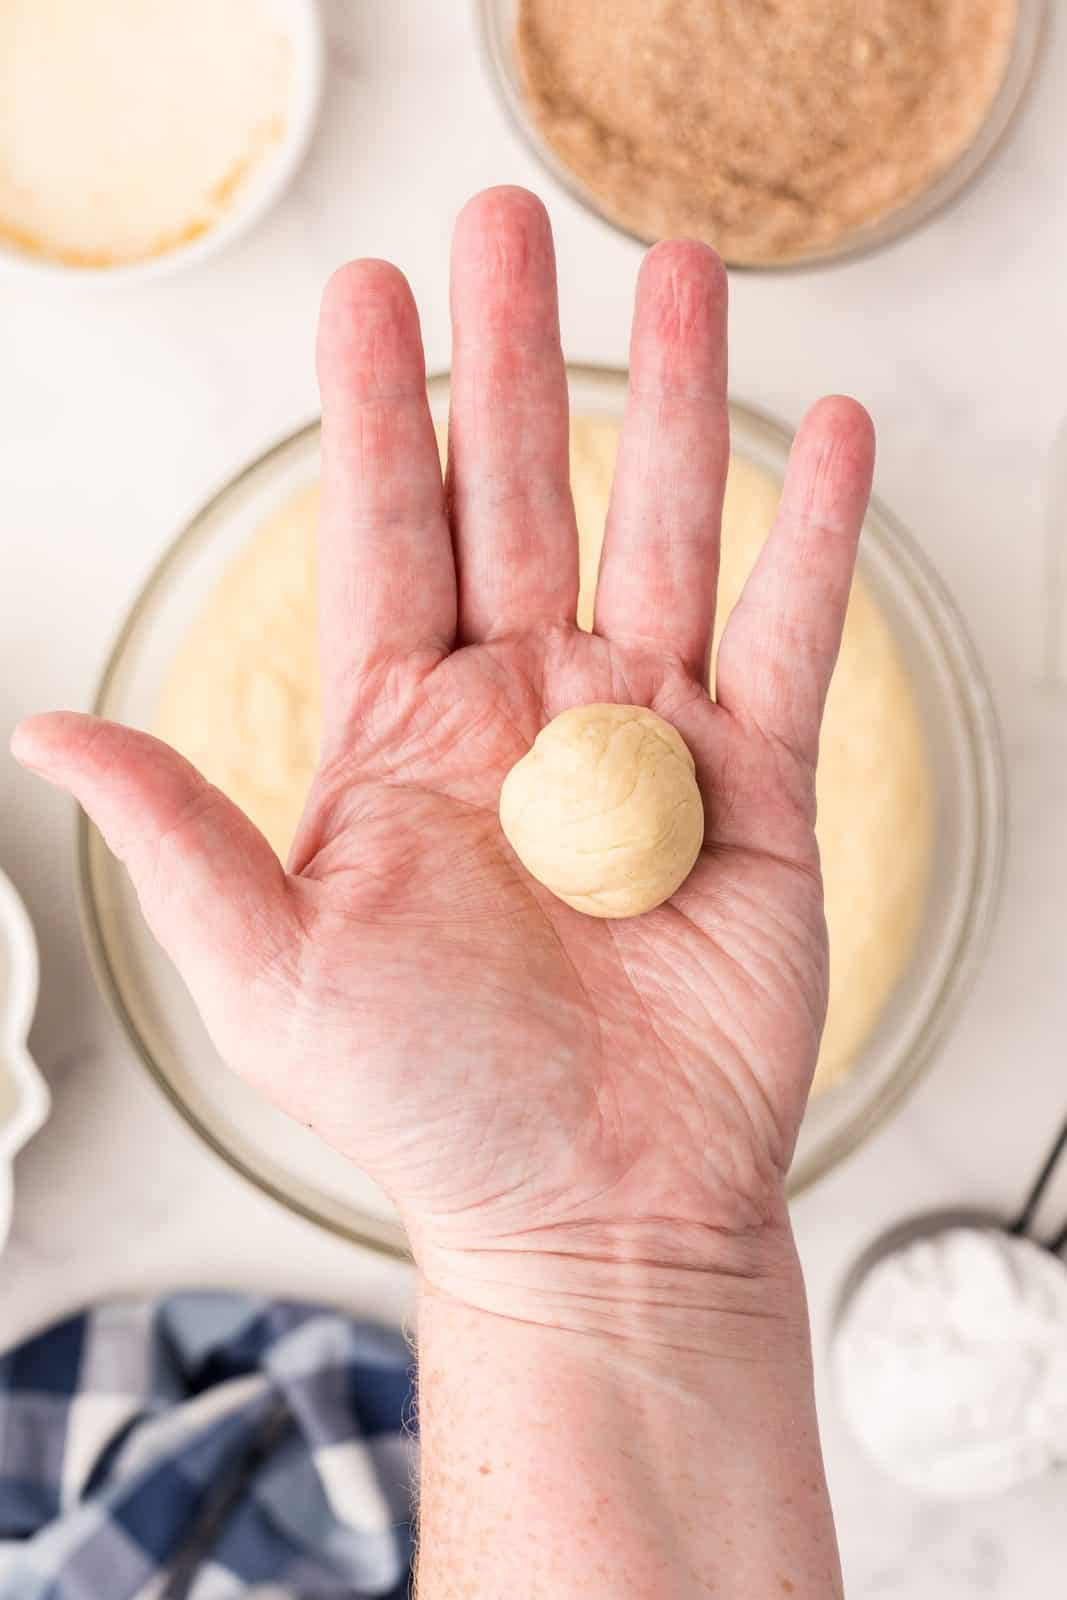 Dough rolled into balls.